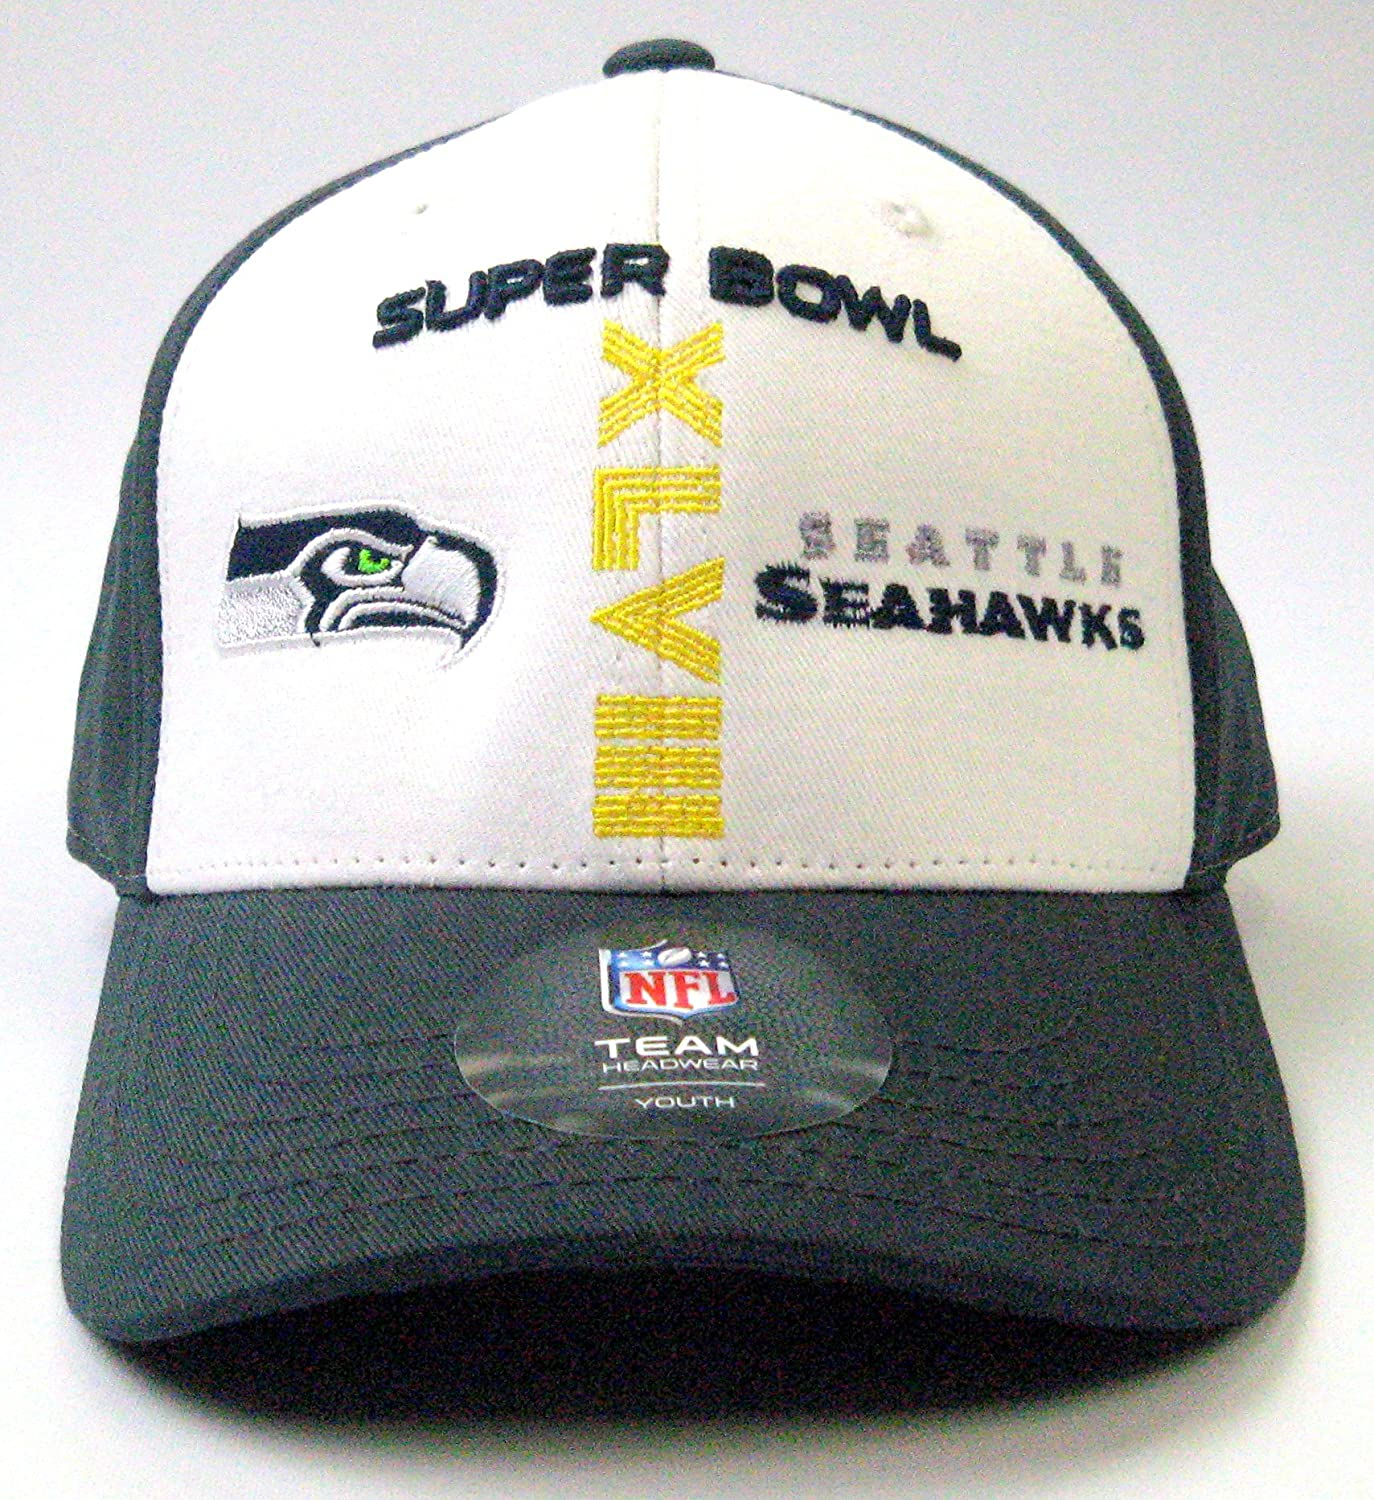 96f4ec6a Seattle Seahawks Super Bowl XLVIII NFL Youth Special Edition Adjustable  Grey/White Cap